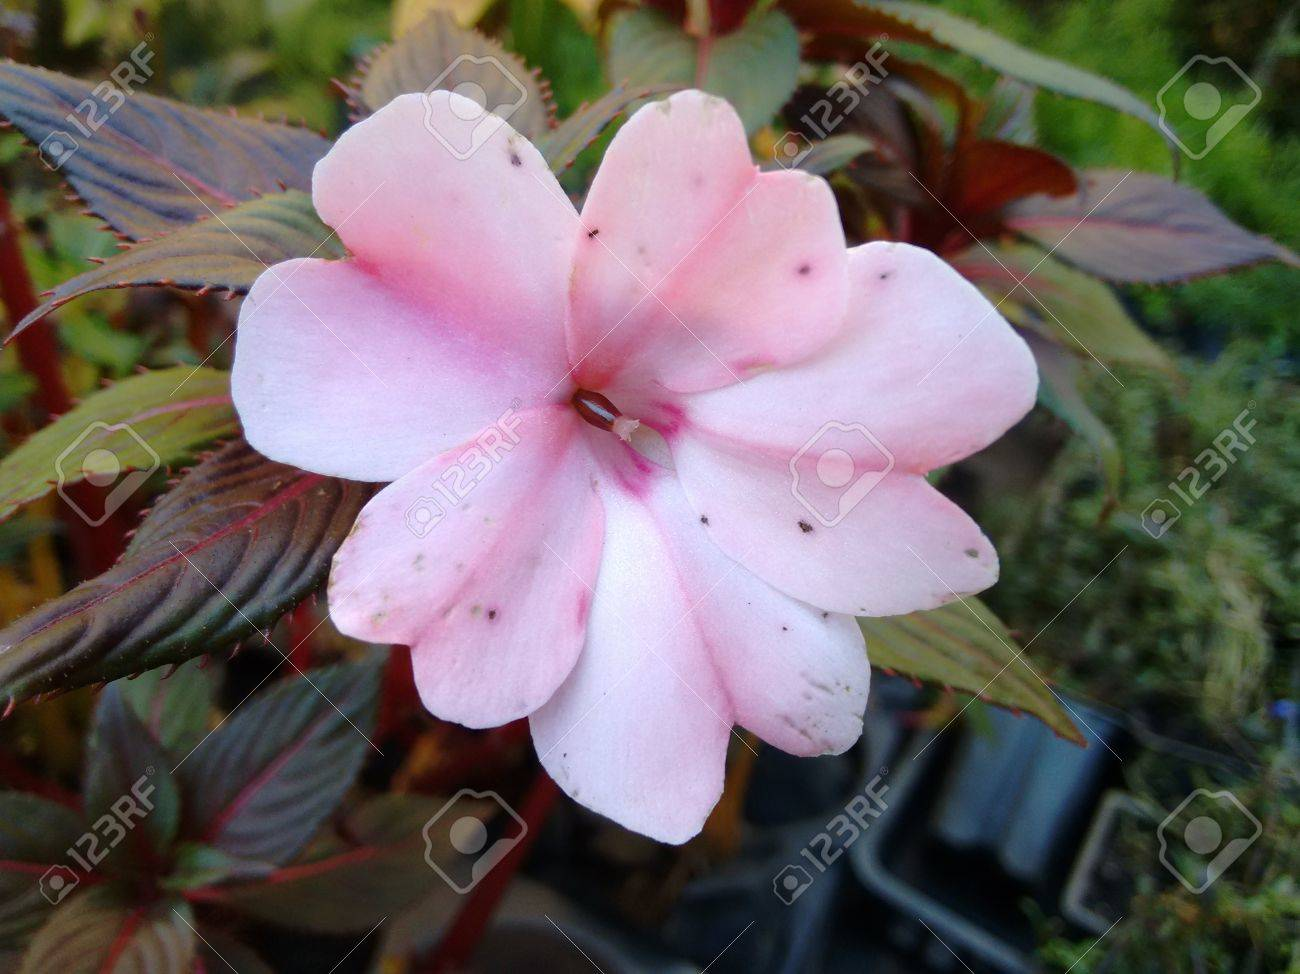 Impatiens flower light pink a plant of the family balsaminaceae impatiens flower light pink a plant of the family balsaminaceae known by the names mightylinksfo